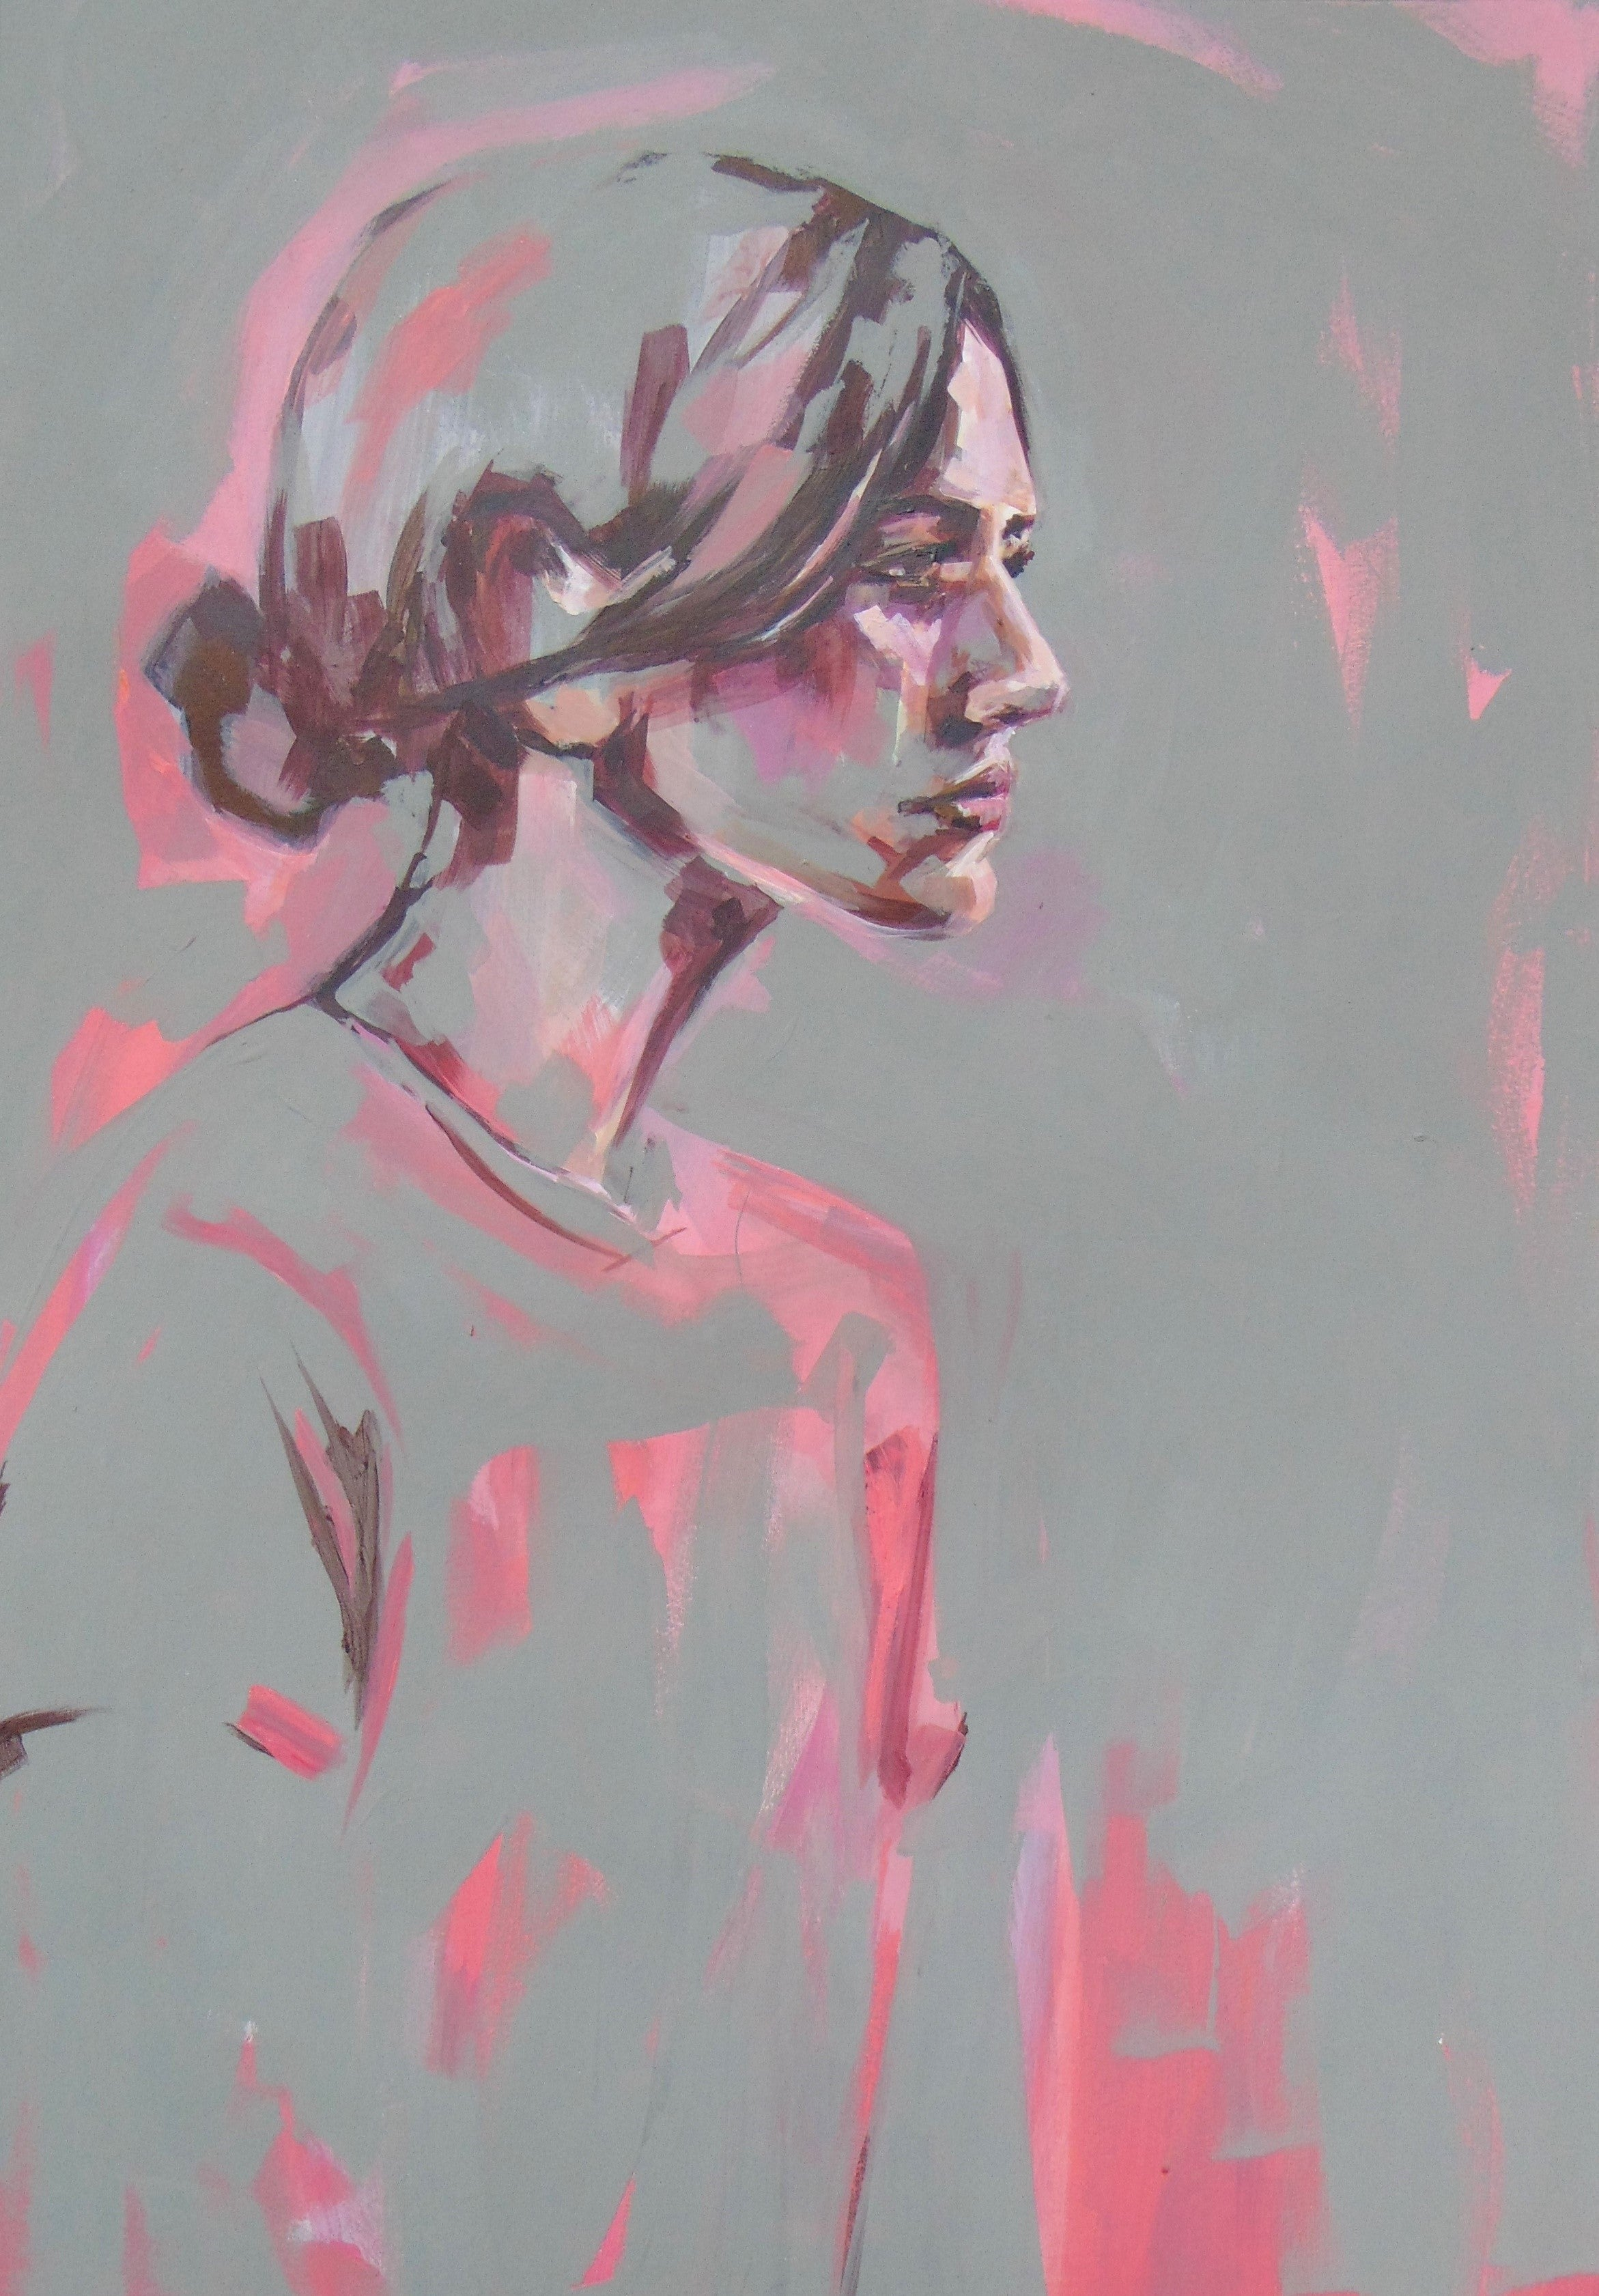 Pink and Grey original signed great reviews vibrant portrait emerging art 2019